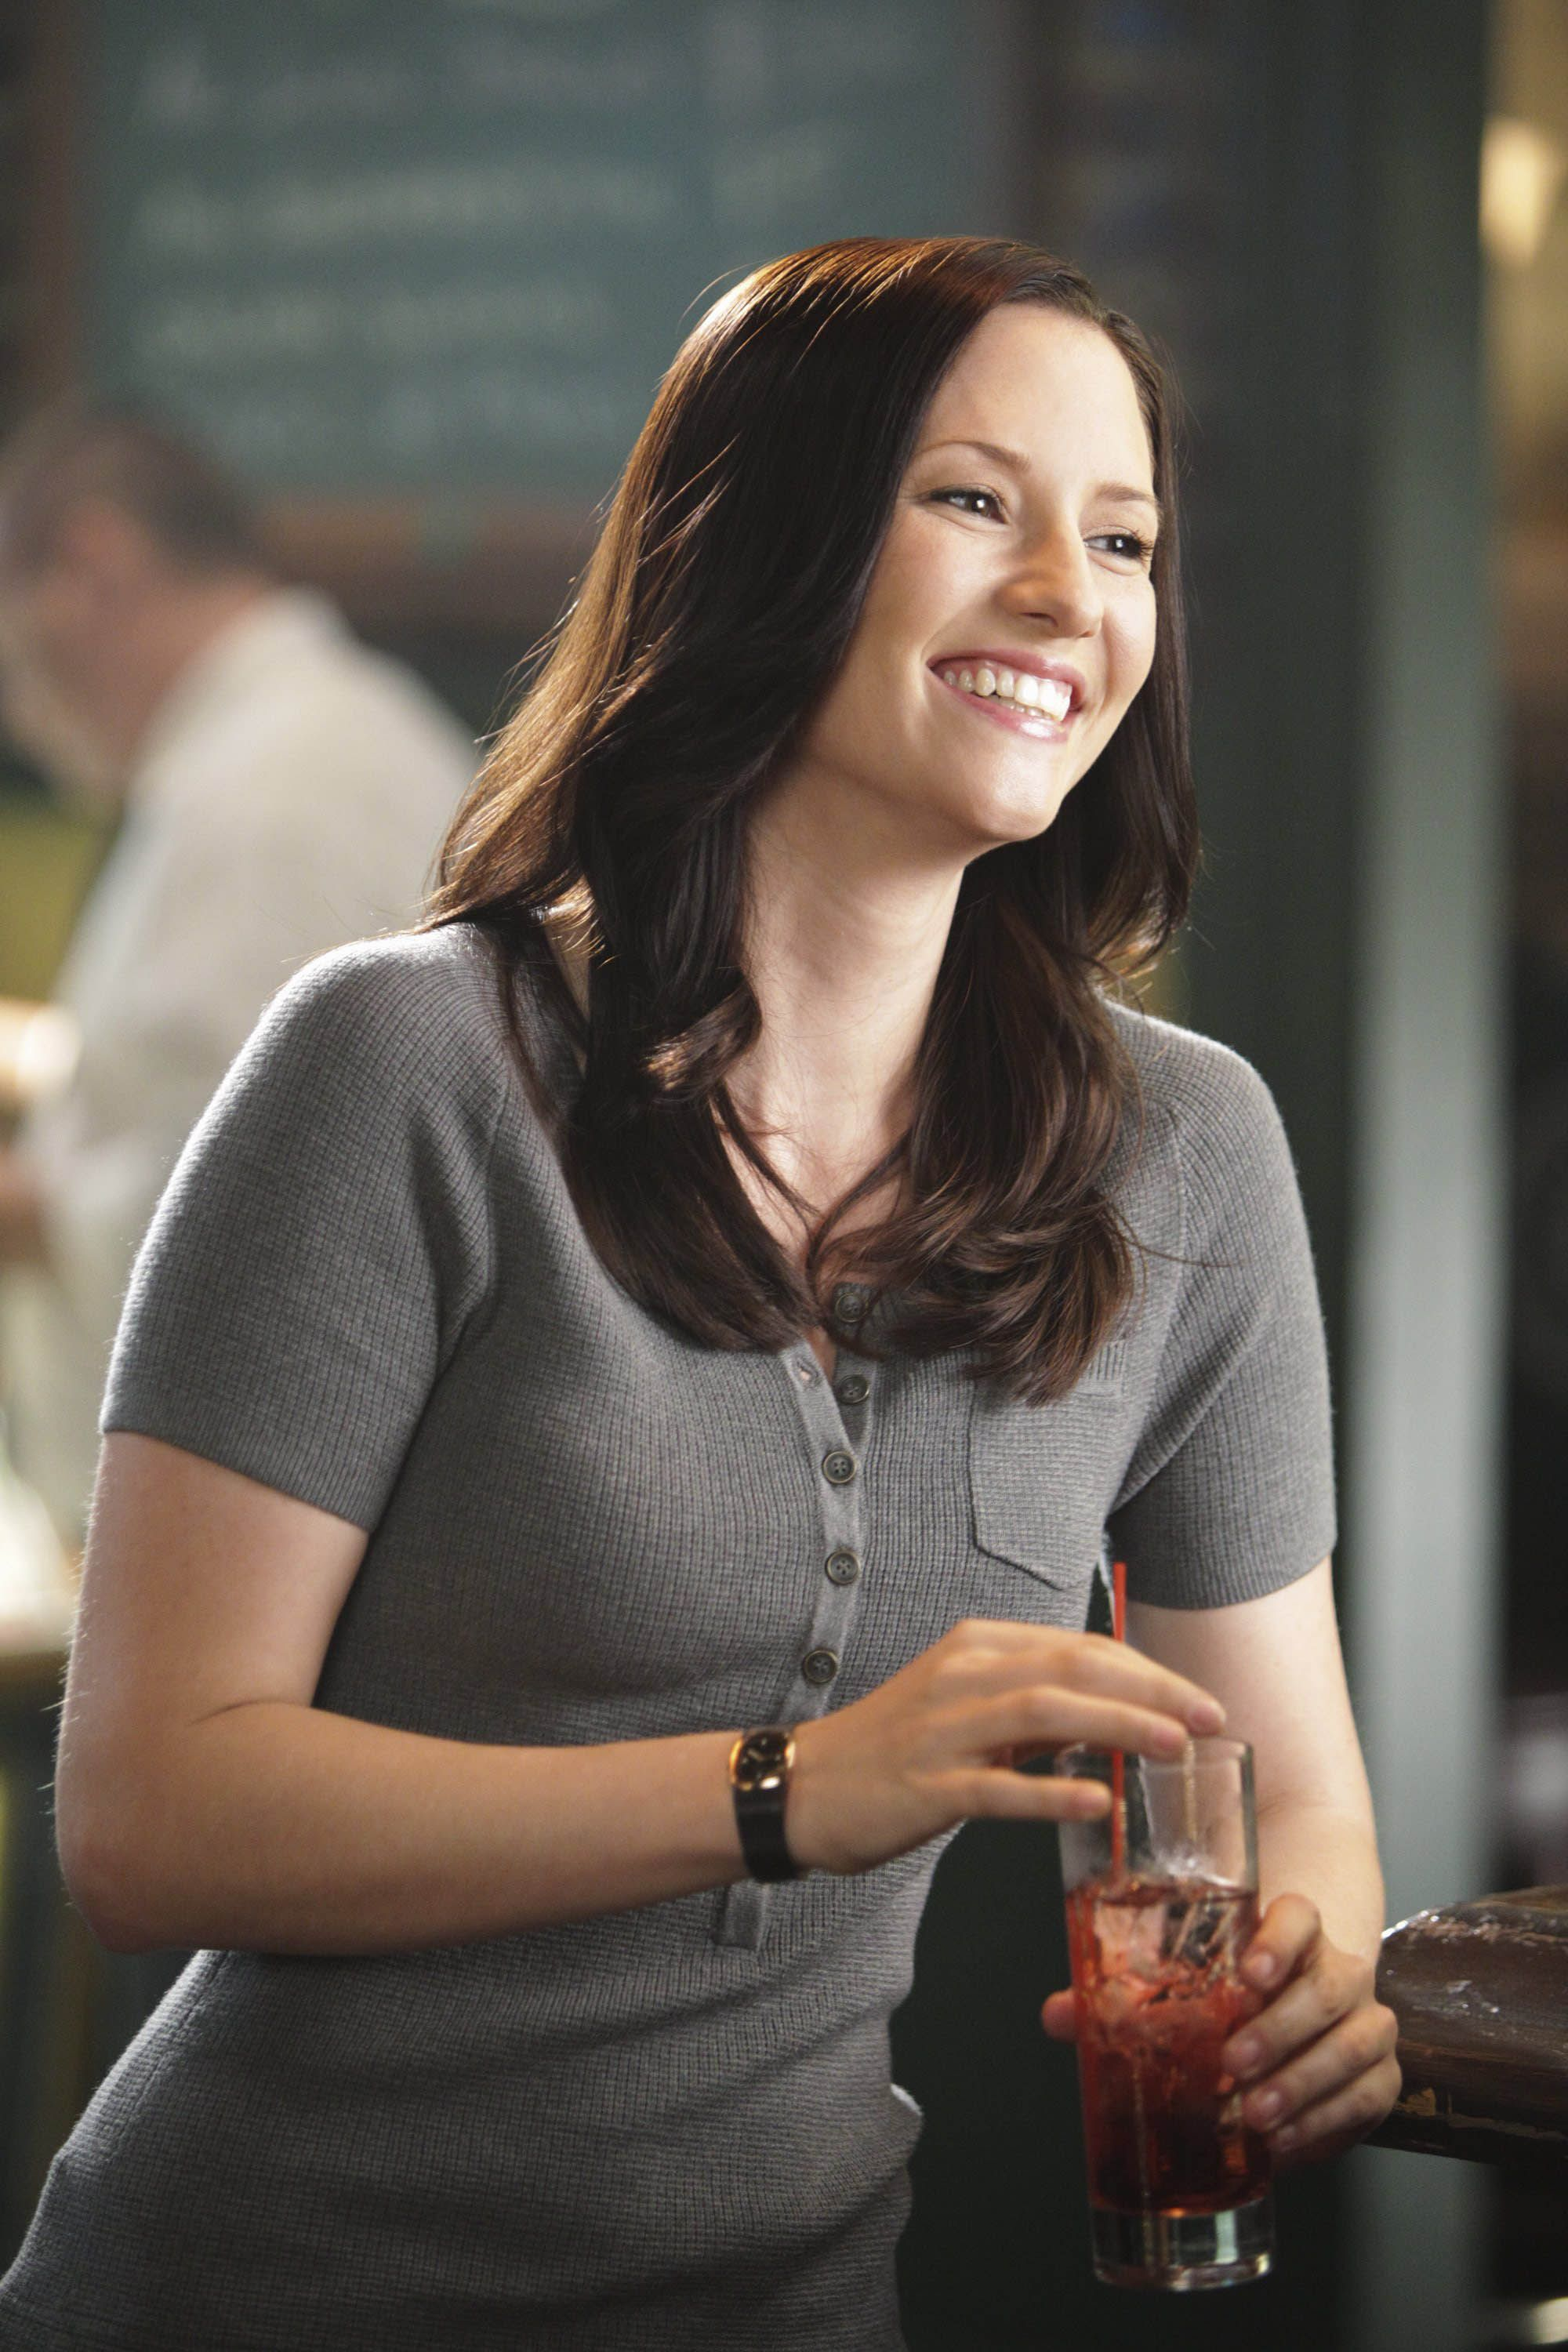 7x07 Thats Me Trying 0003 Chyler Leigh Network Lexie